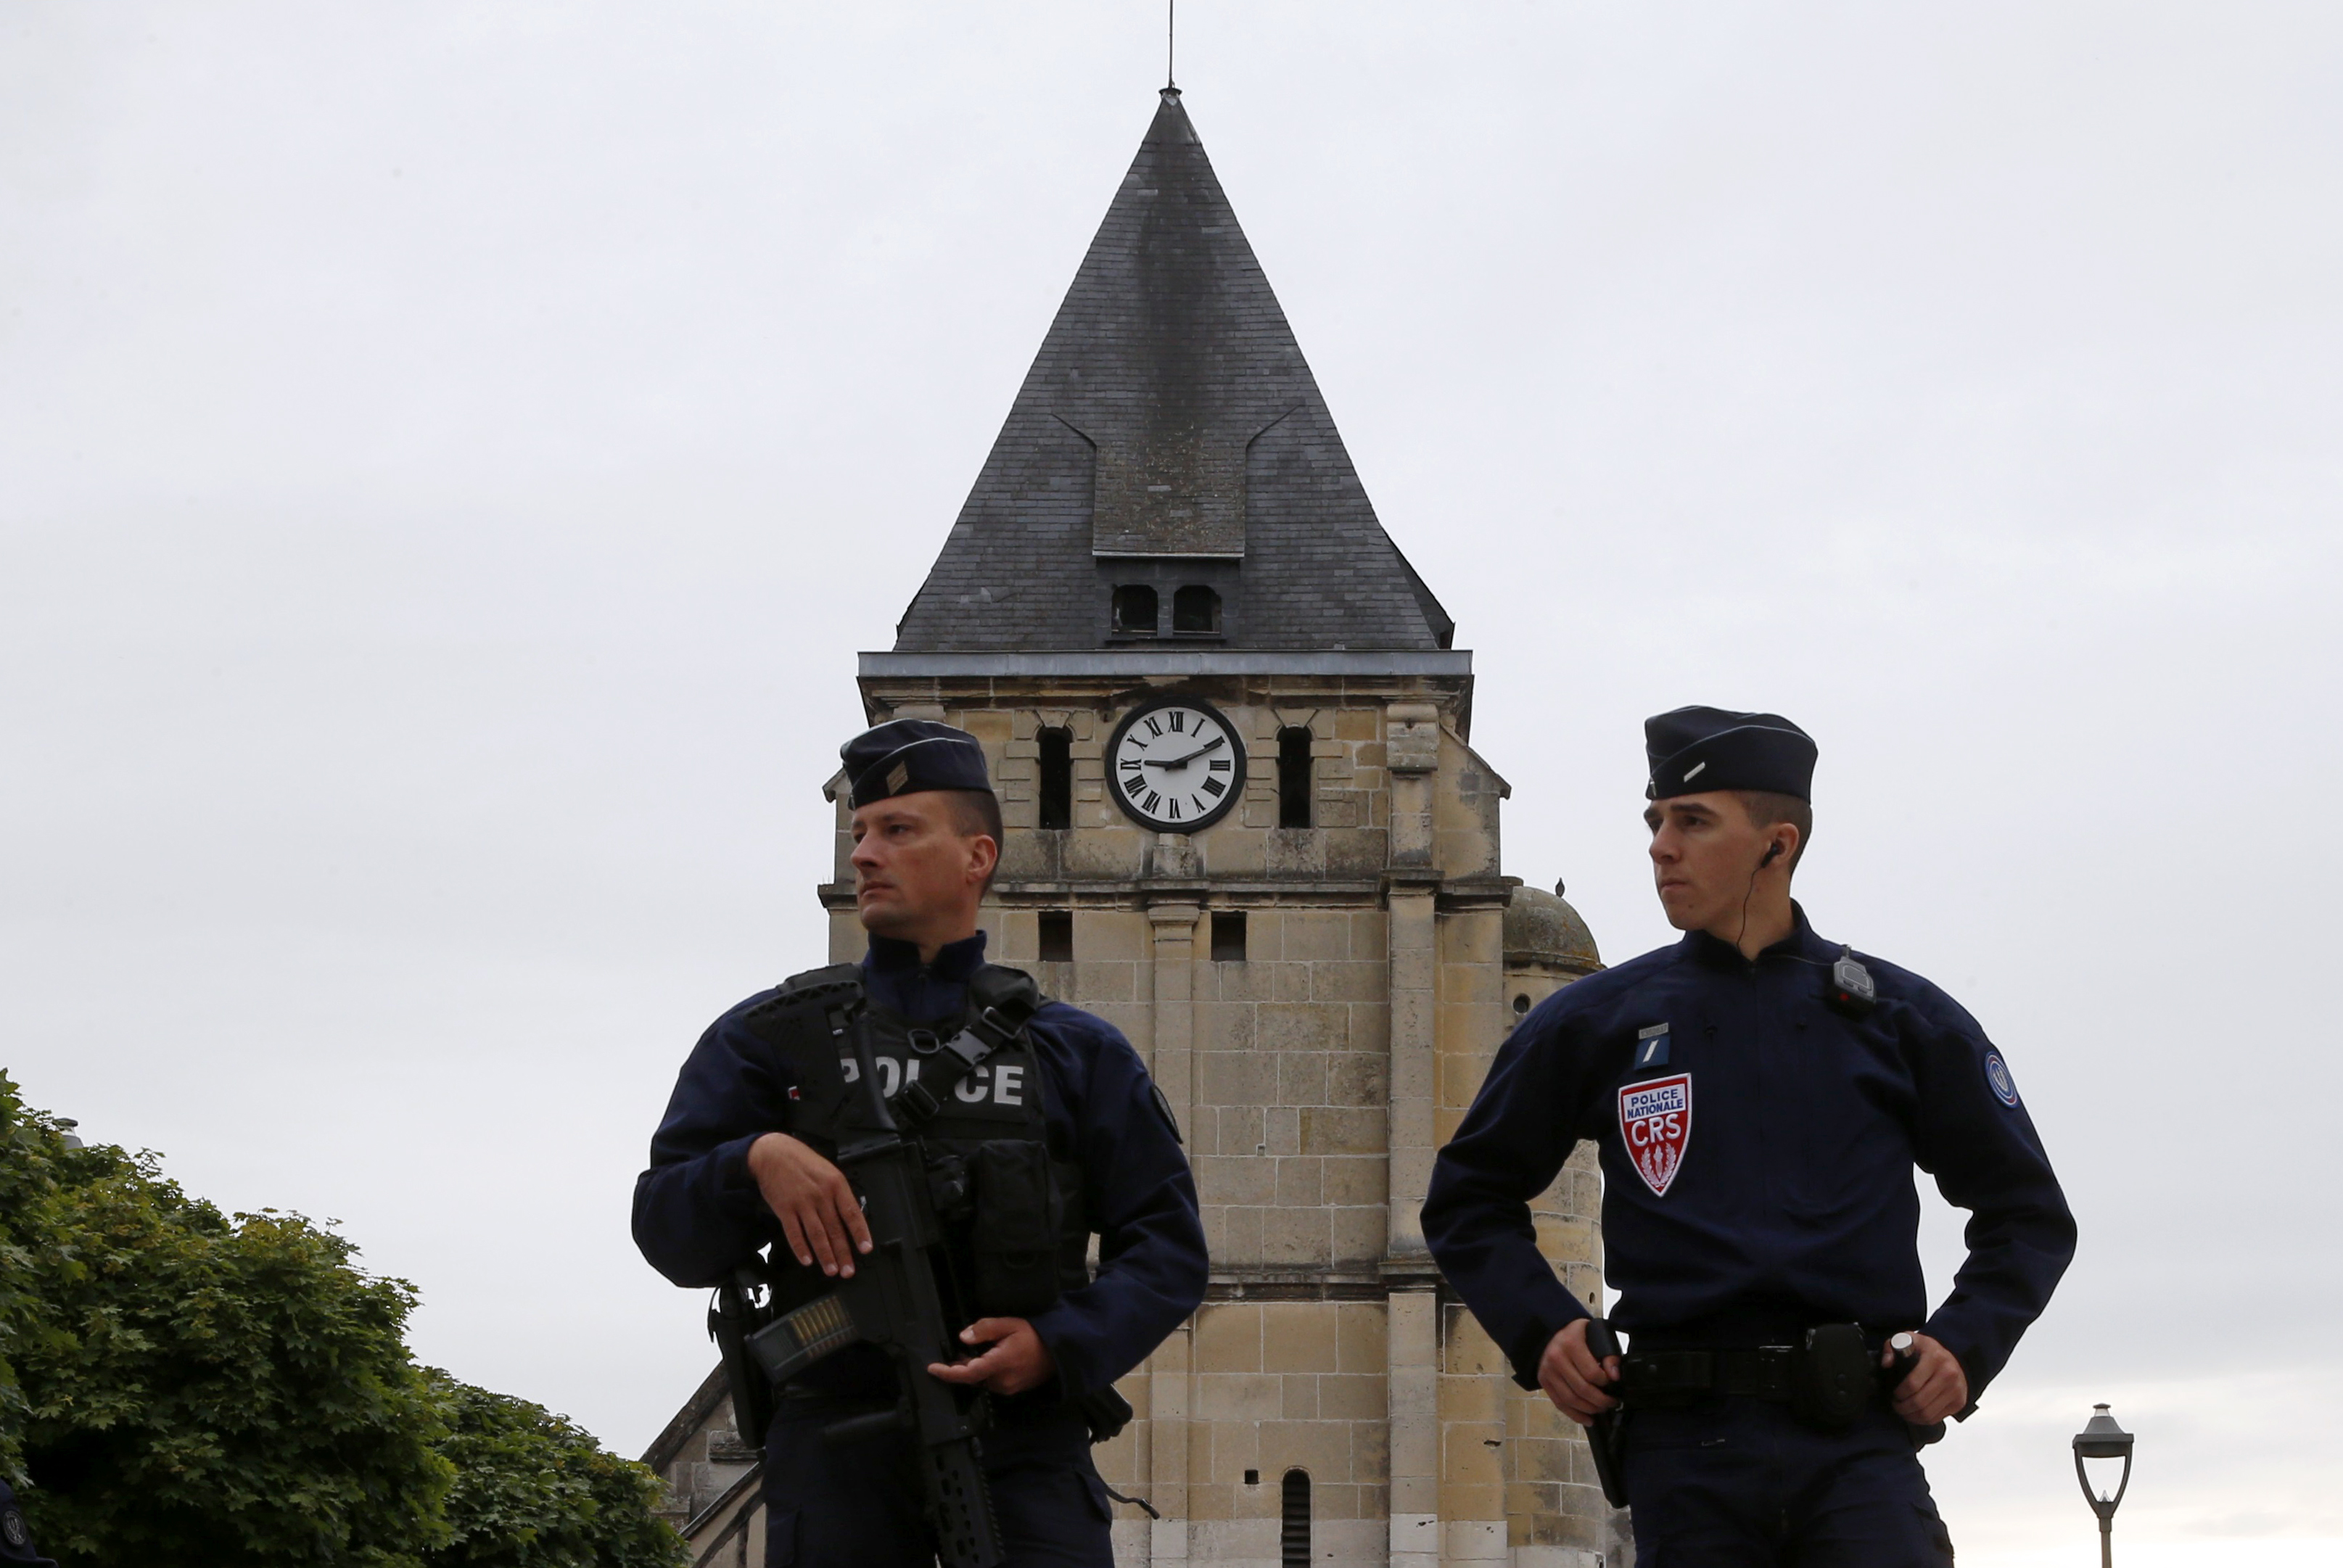 French police guard stand in front of church